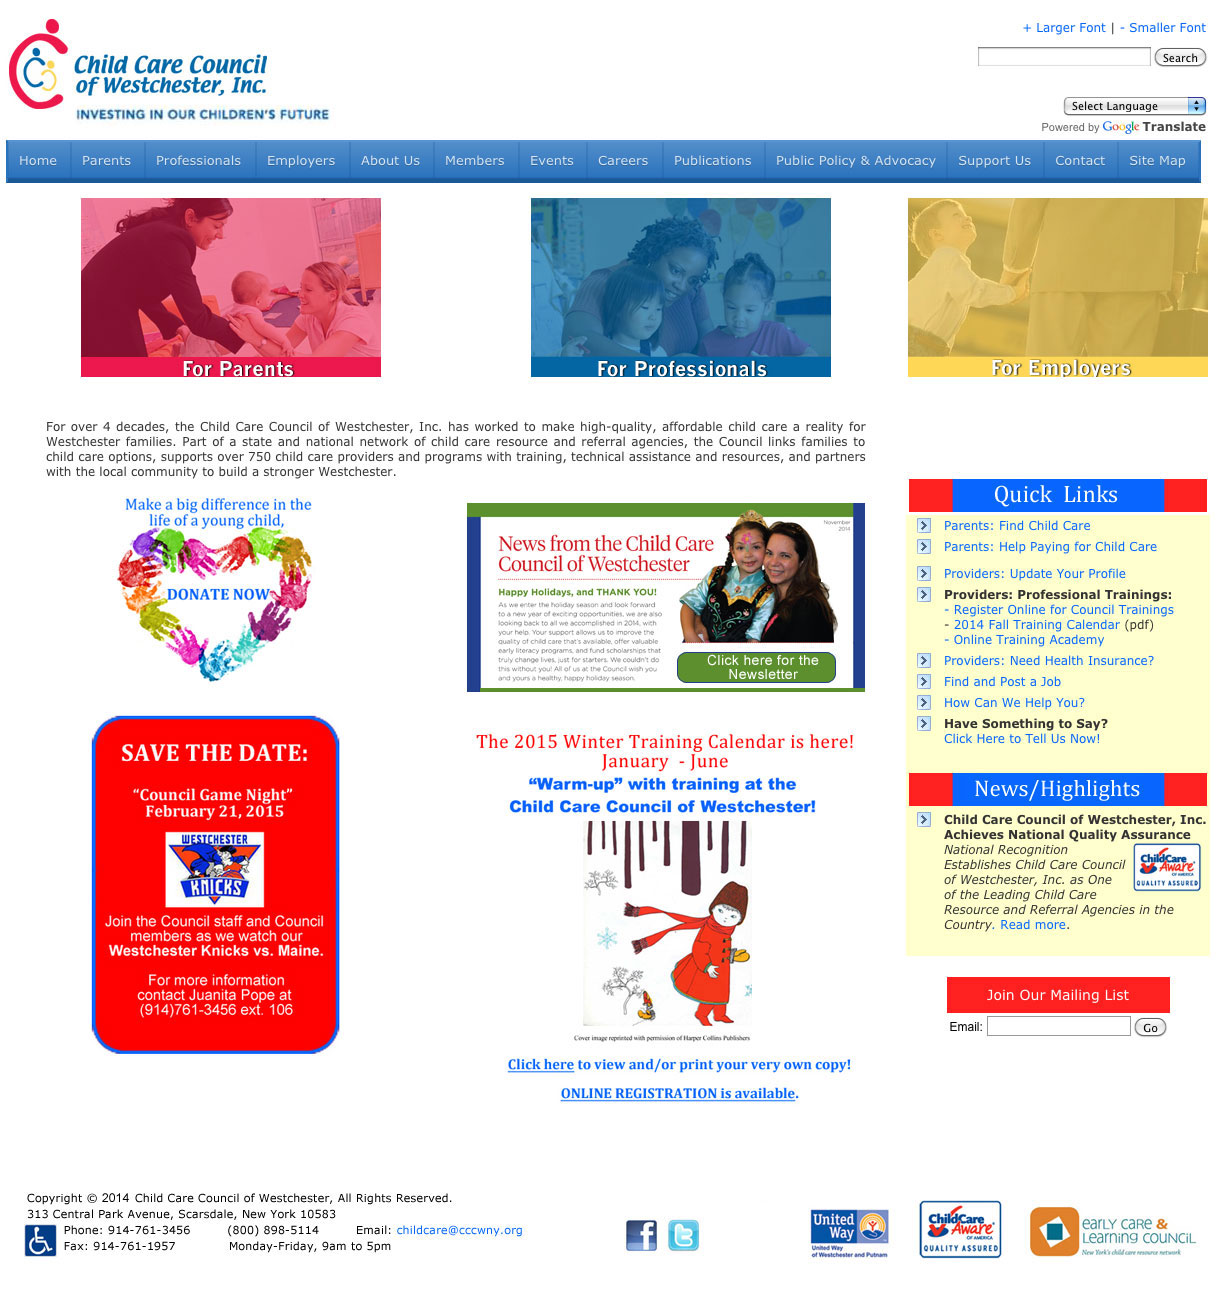 child-care-council-westchester-website-old